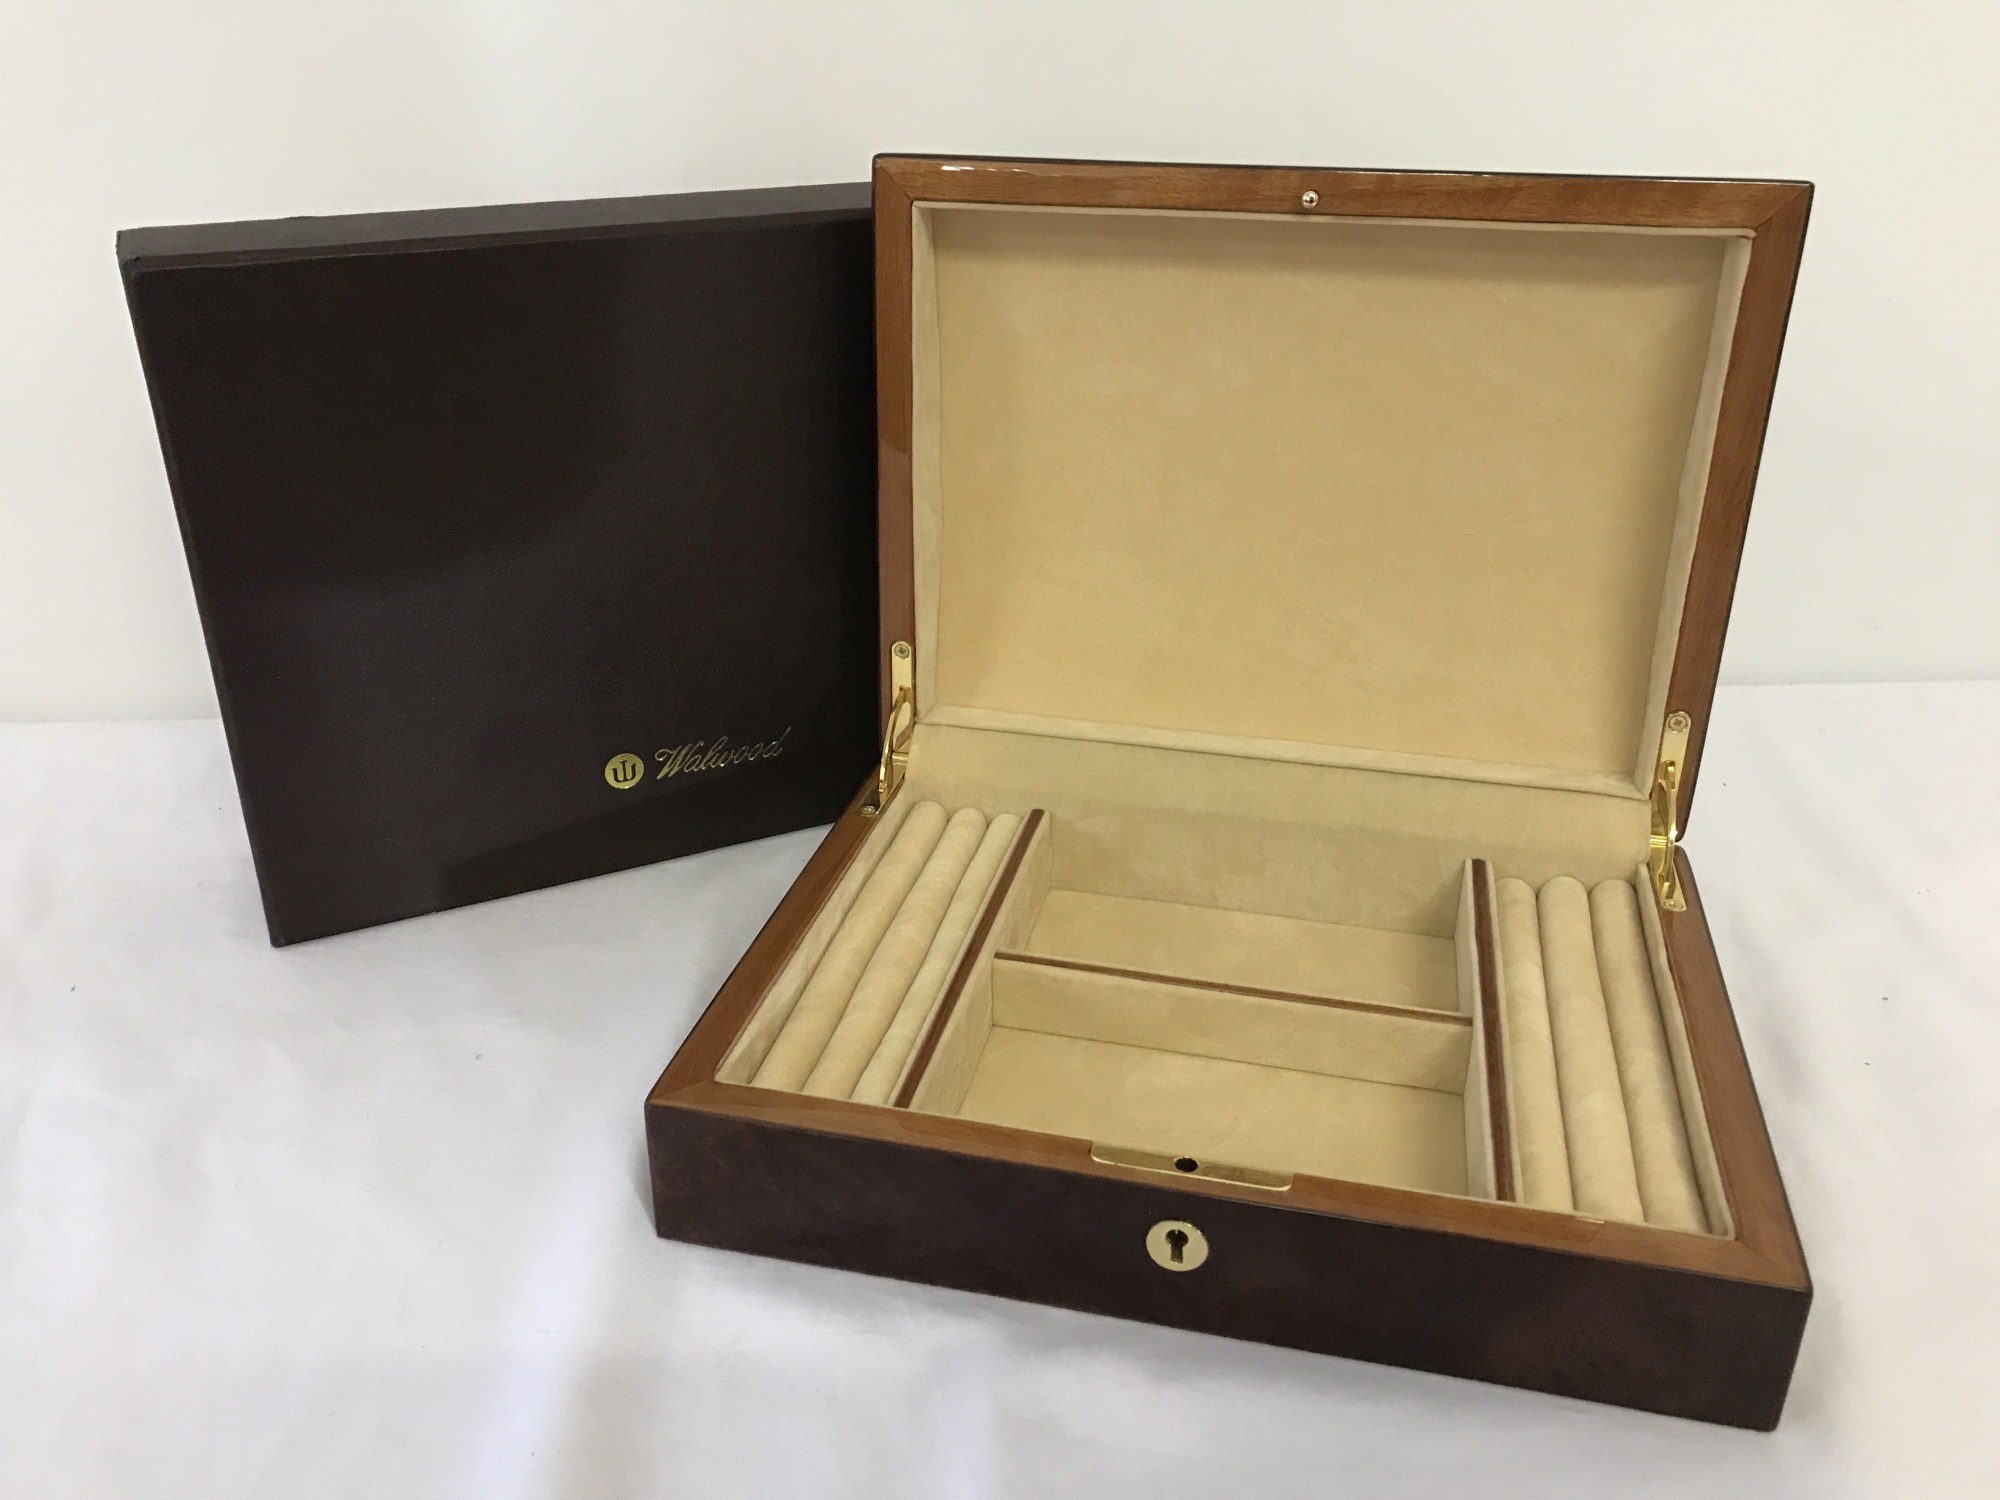 Lot 5 - A boxed red Birdseye maple jewellery box by Walwood.